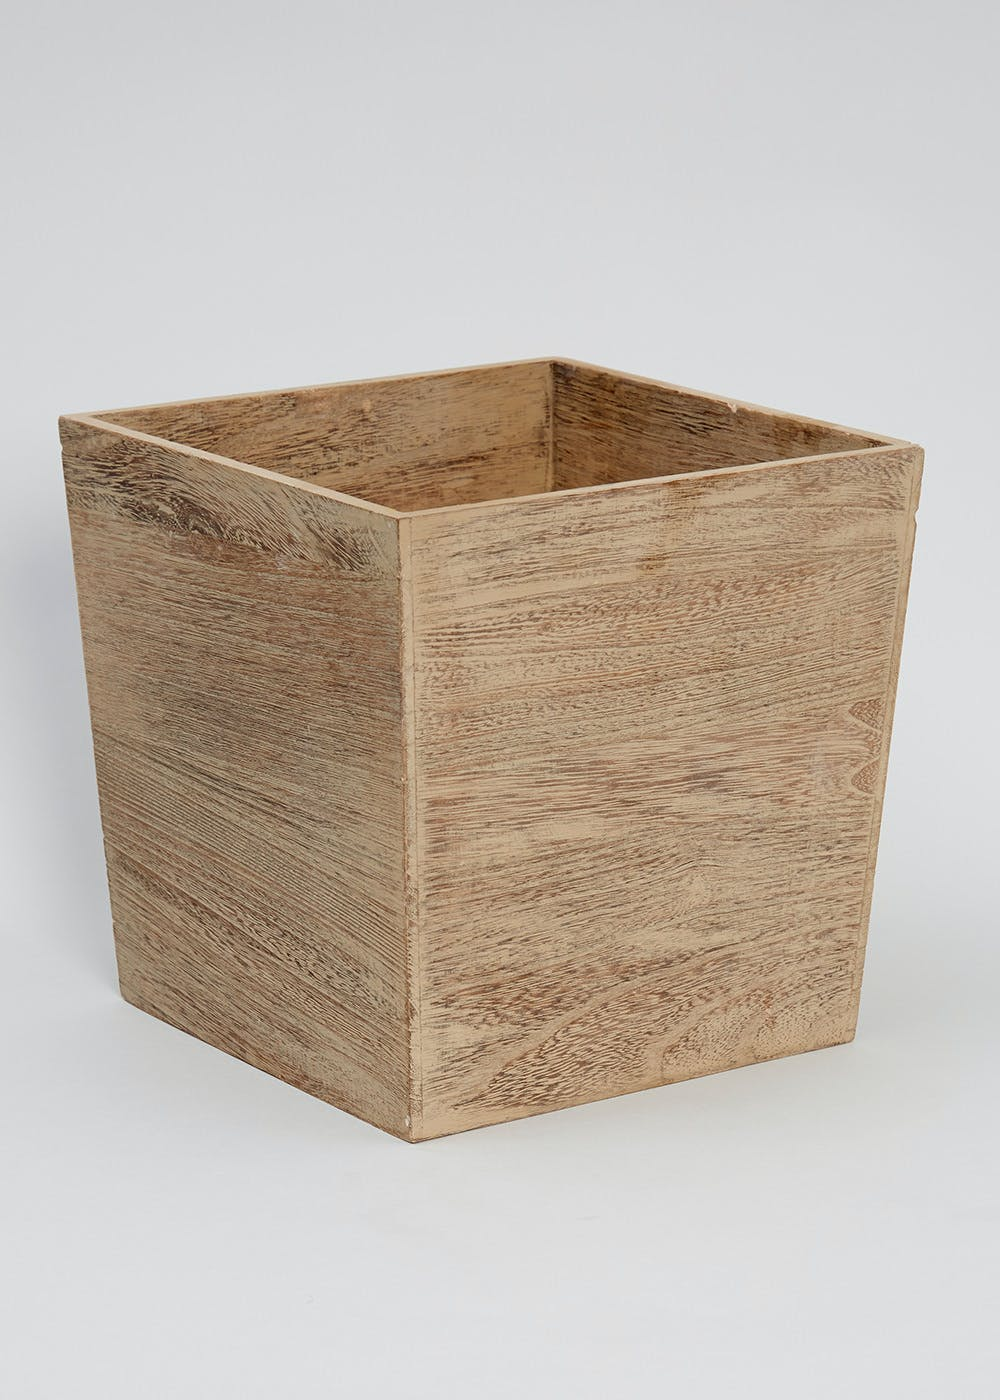 Plastic bathroom accessories uk - Square Wooden Bin 25cm X 25cm